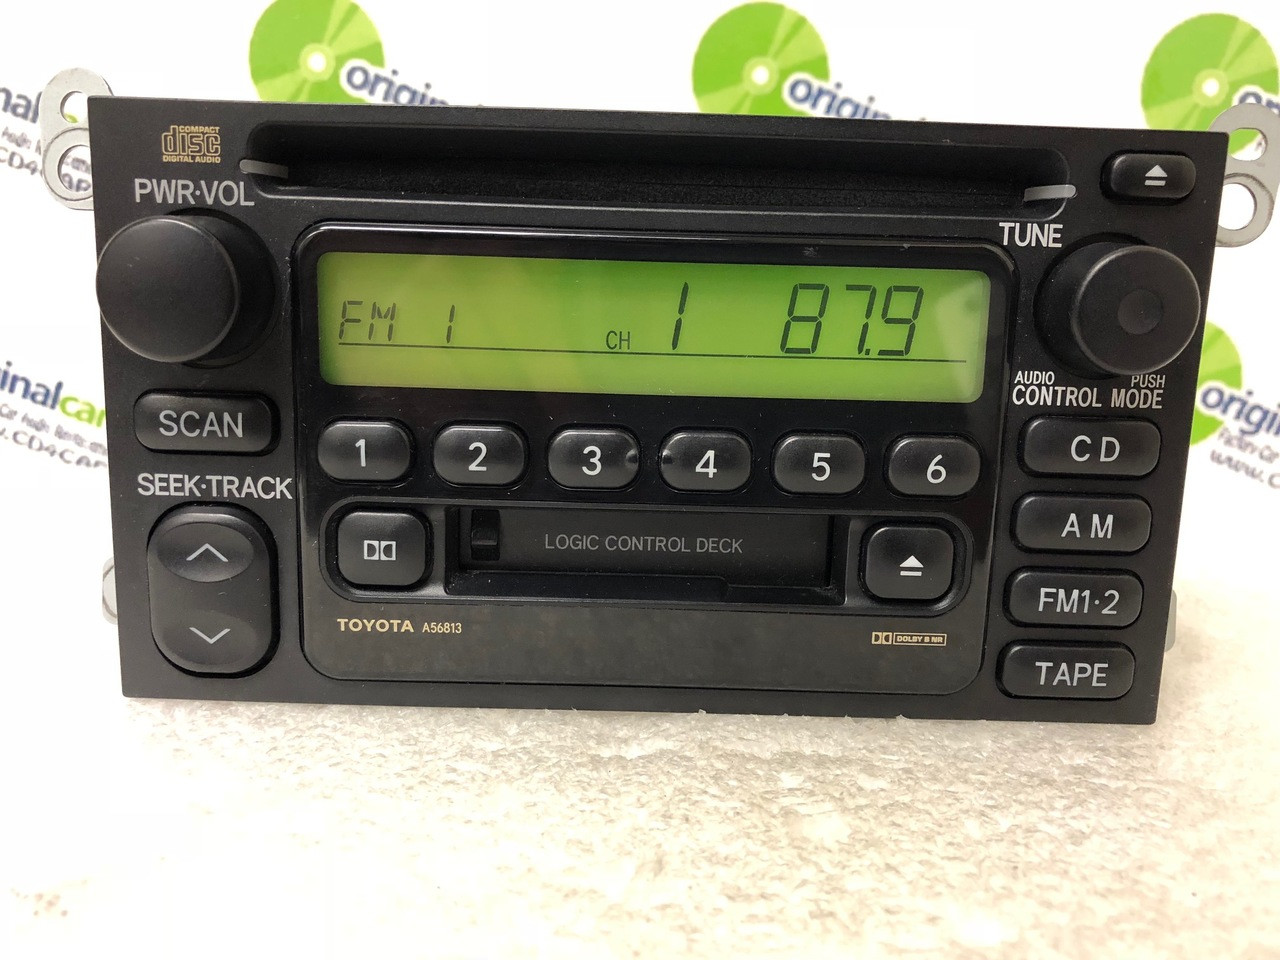 a56813 1990 2002 toyota camry celica radio tape cd playerCd Player Toyota #5